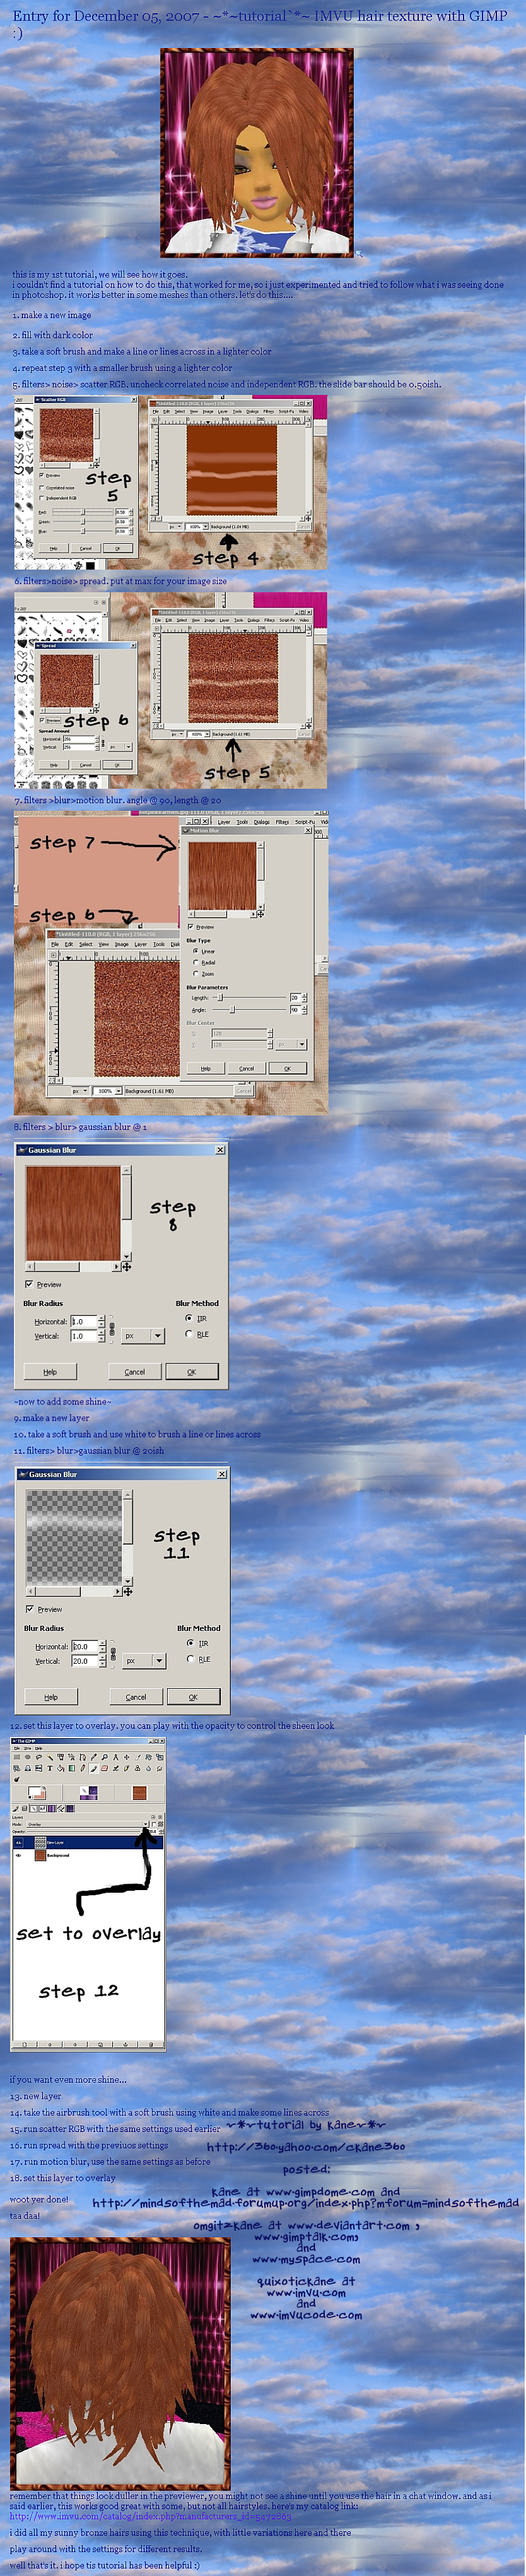 IMVU hair textures with GIMP